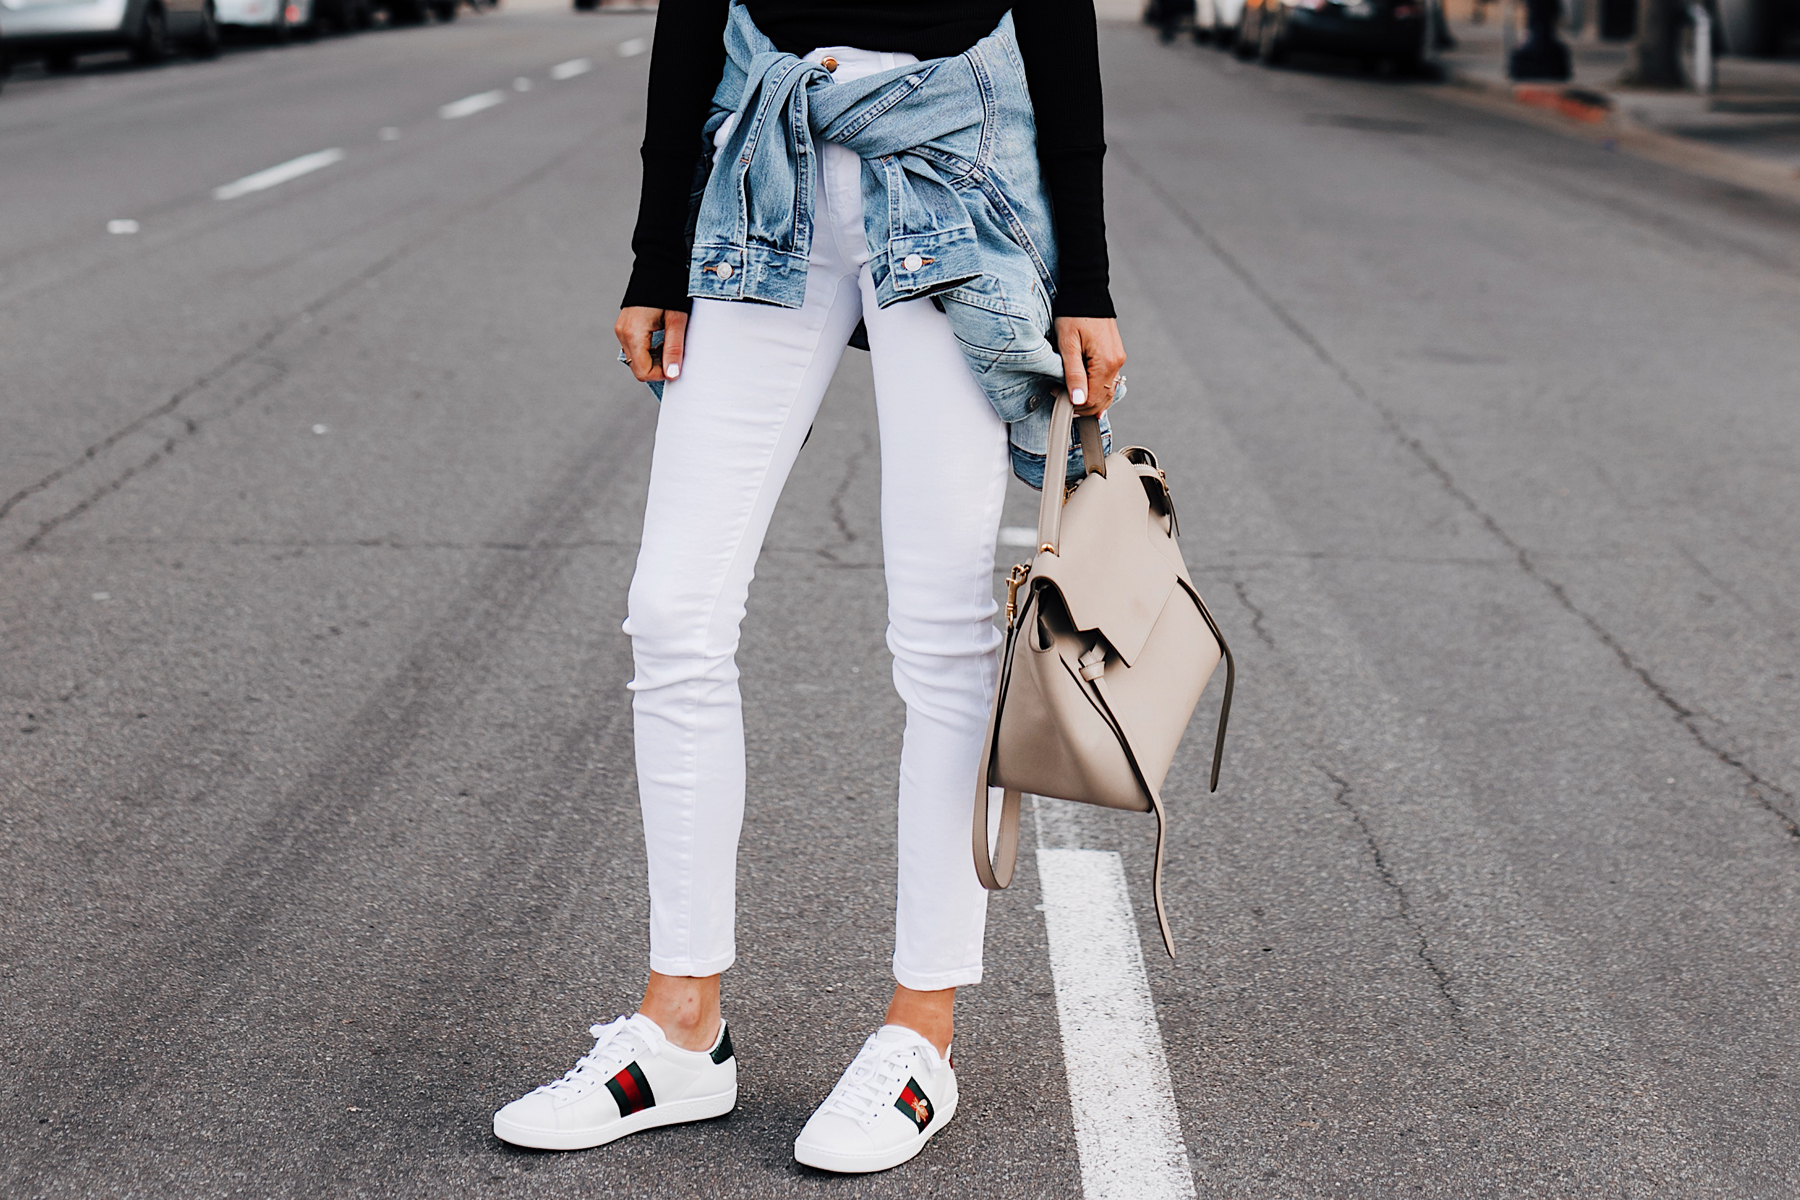 Woman Wearing Joes Jeans White Skinny Jeans Levis Denim Jacket Gucci Ace Embroidered Sneakers Fashion Jackson San Diego Fashion Blogger Street Style